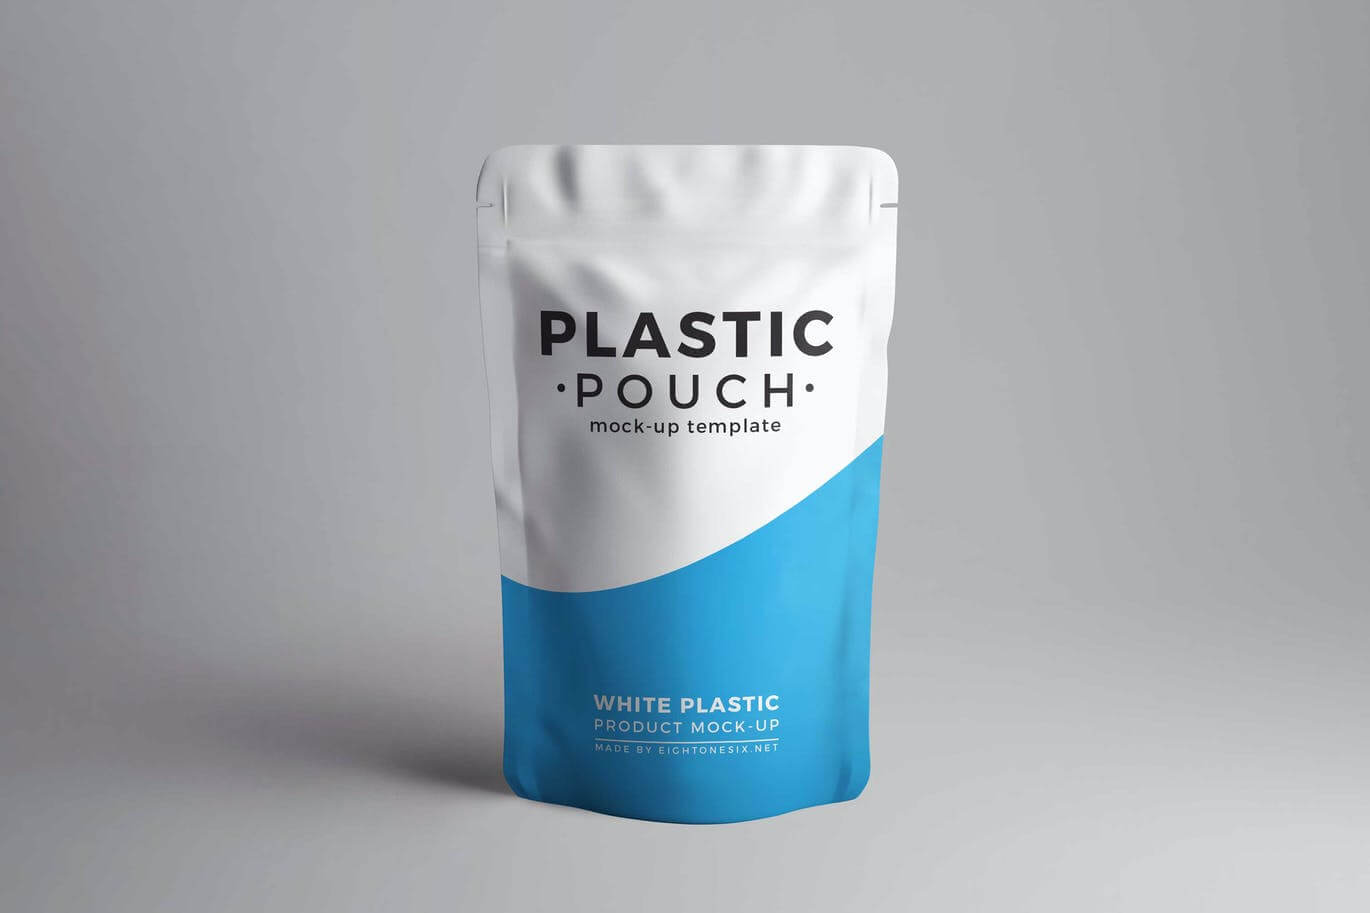 Plastic Pouch Product Mock-Up (1)